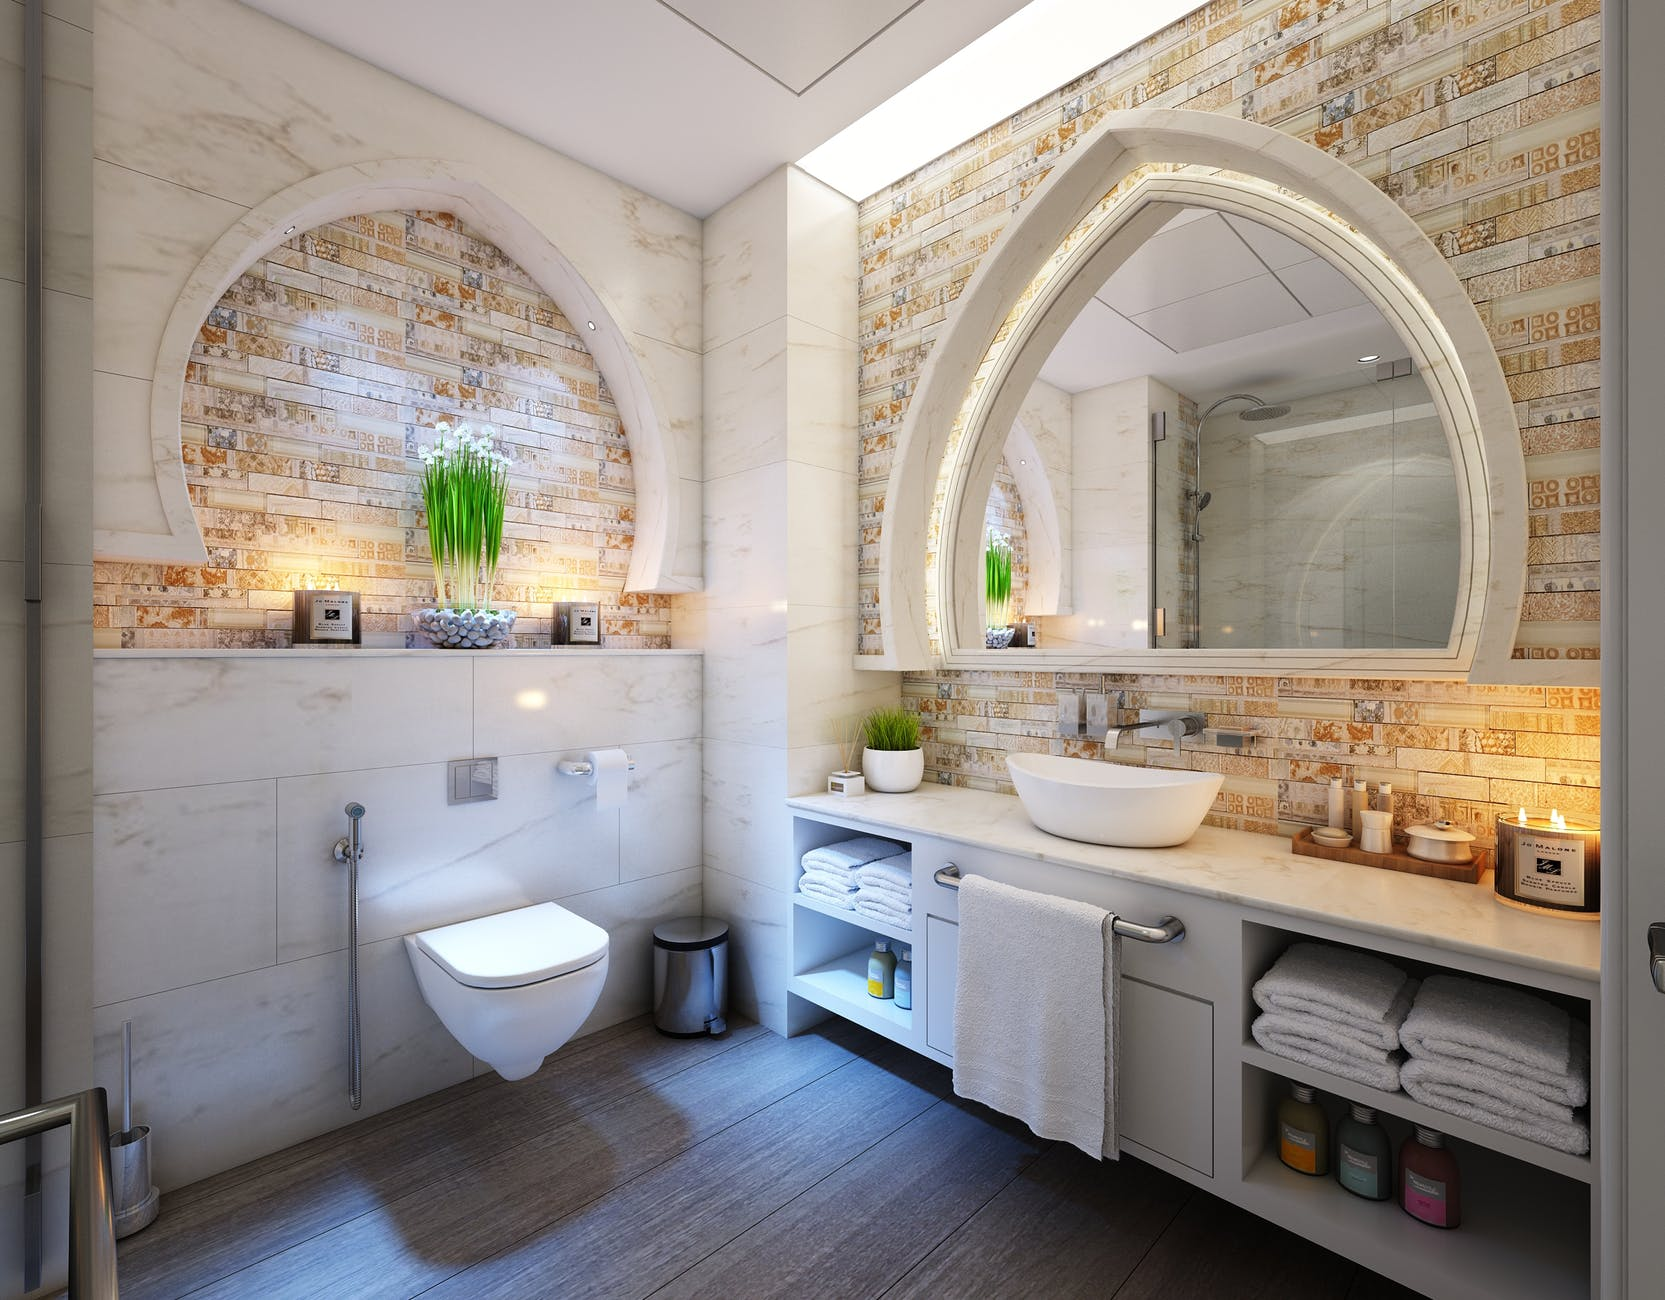 Let There Be Space: 7 Ways to Add Space to Your Small ... on Space Bathroom  id=98685